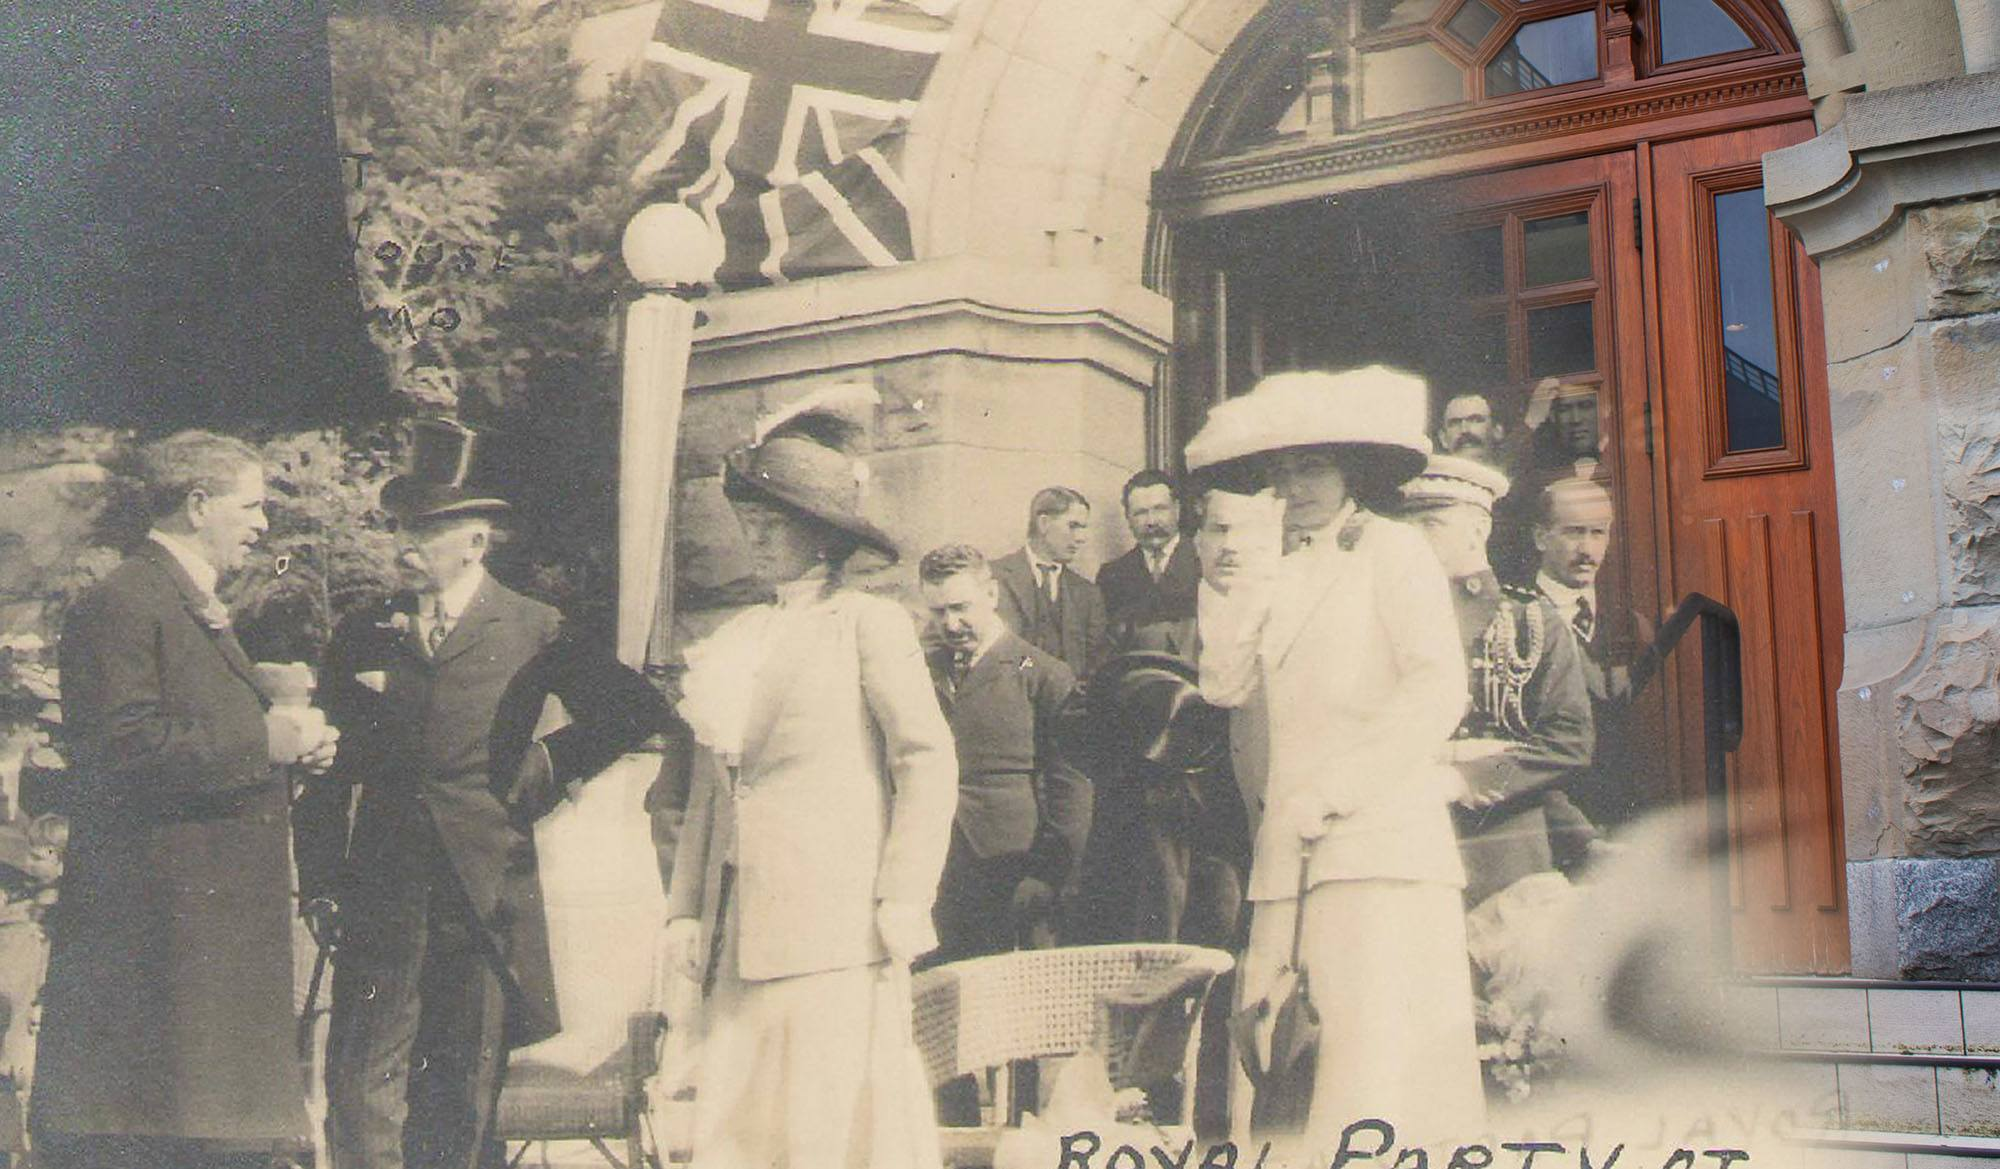 The Duke and Duchess of Connaught leave the courthouse in 1915 (Nanaimo Archives/On This Spot)